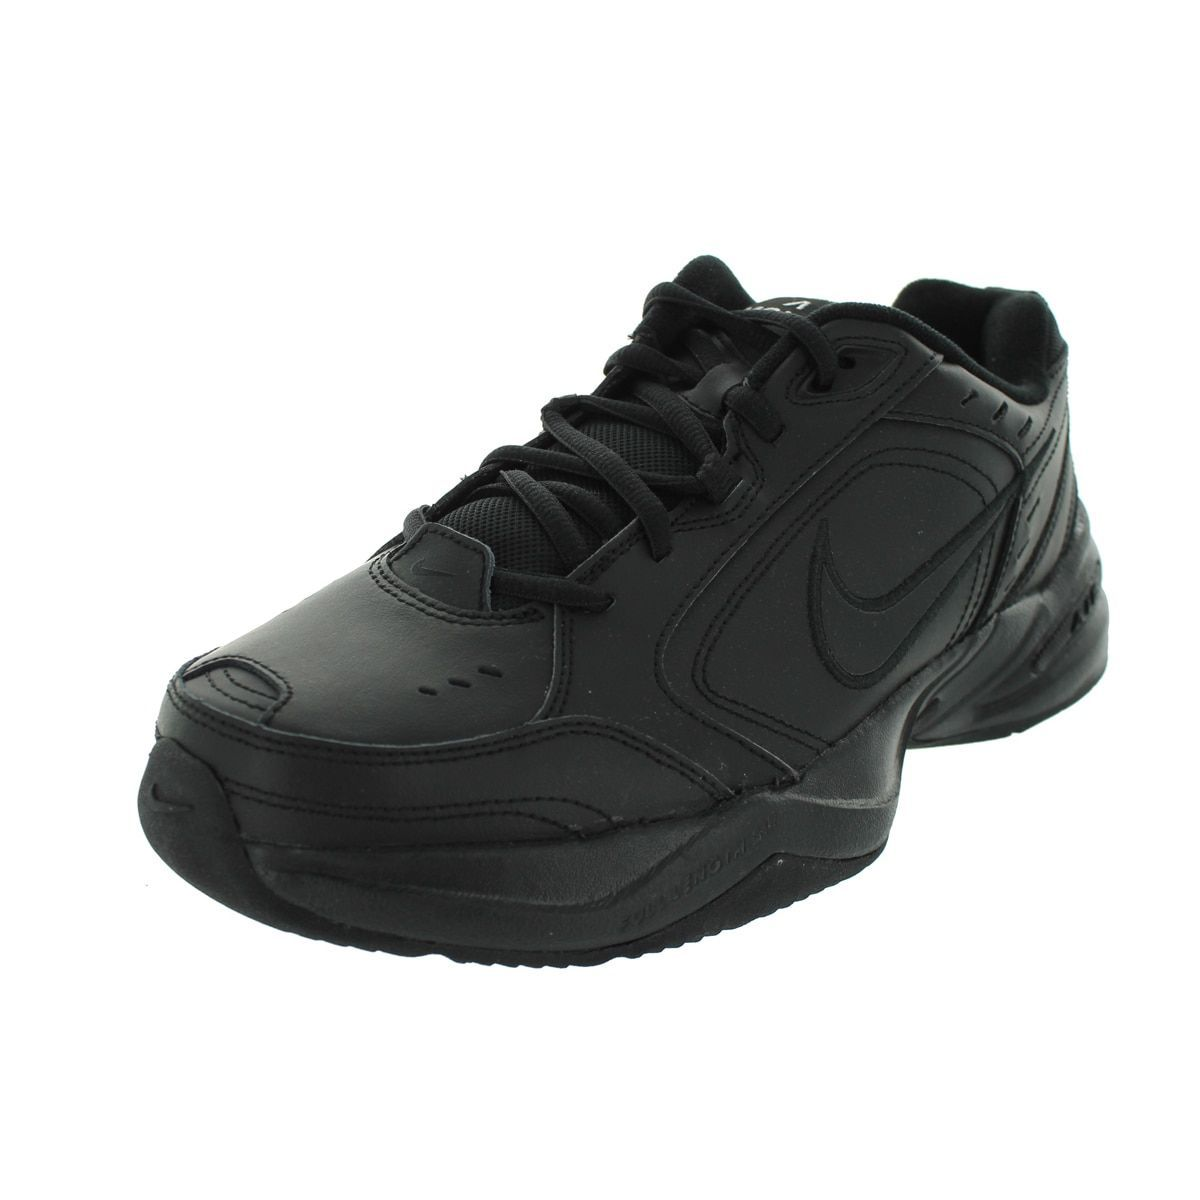 Nike Mens Air Monarch Iv Running Shoes, Black, 10 M Us Leather overlays for  durability and support Full-length Phylon midsole for lightweight  cushioning ...